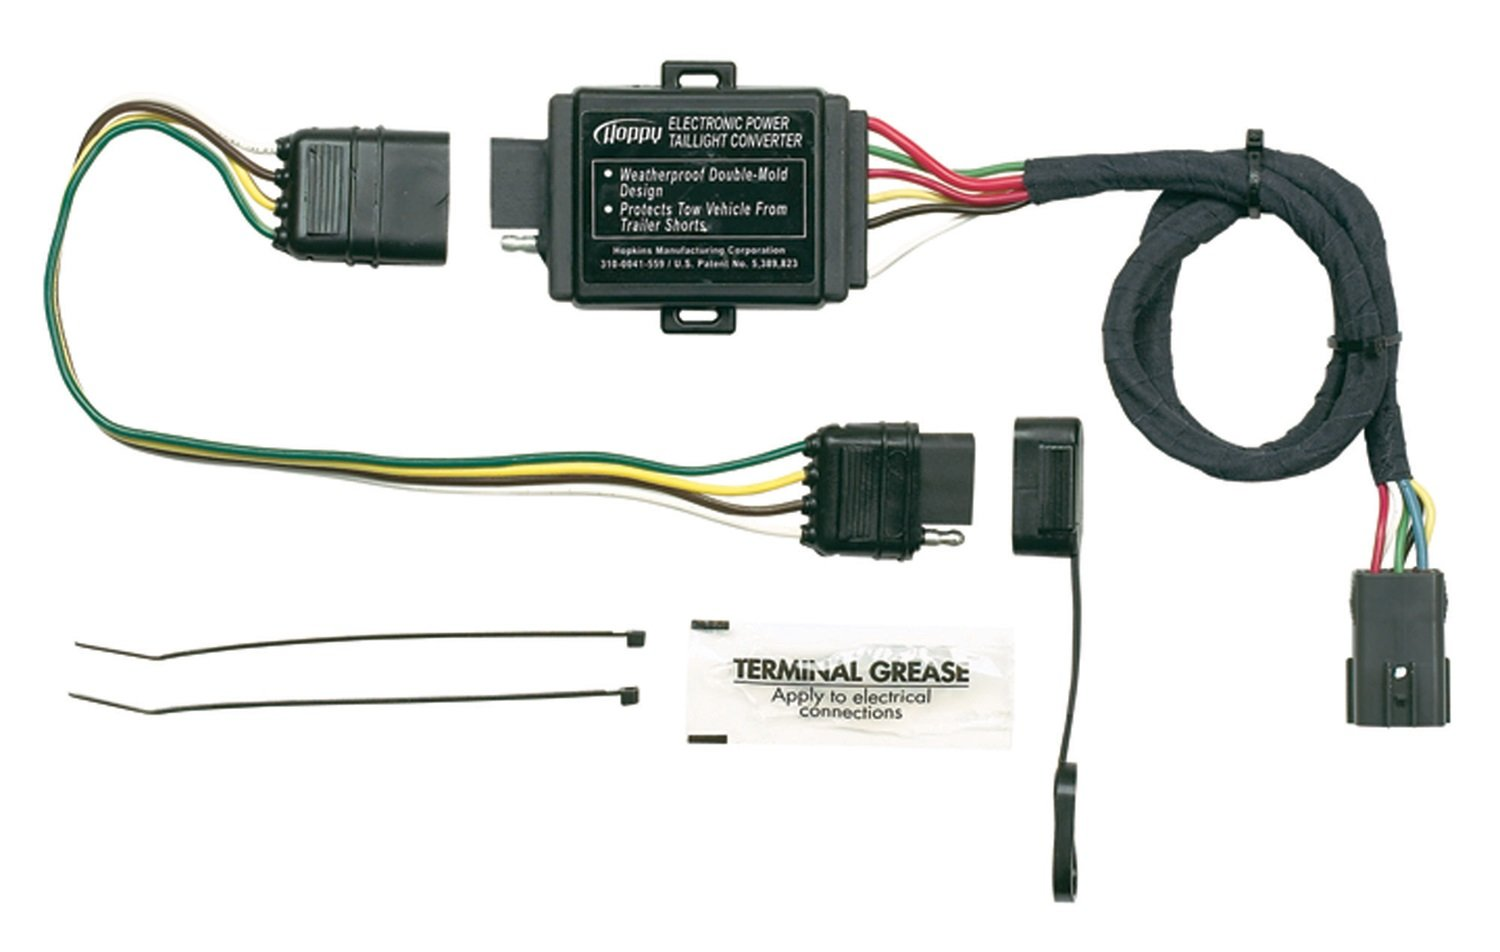 61dKvjPegbL._SL1500_ amazon com hopkins 11143875 plug in simple vehicle to trailer subaru repair wiring harness kit at n-0.co